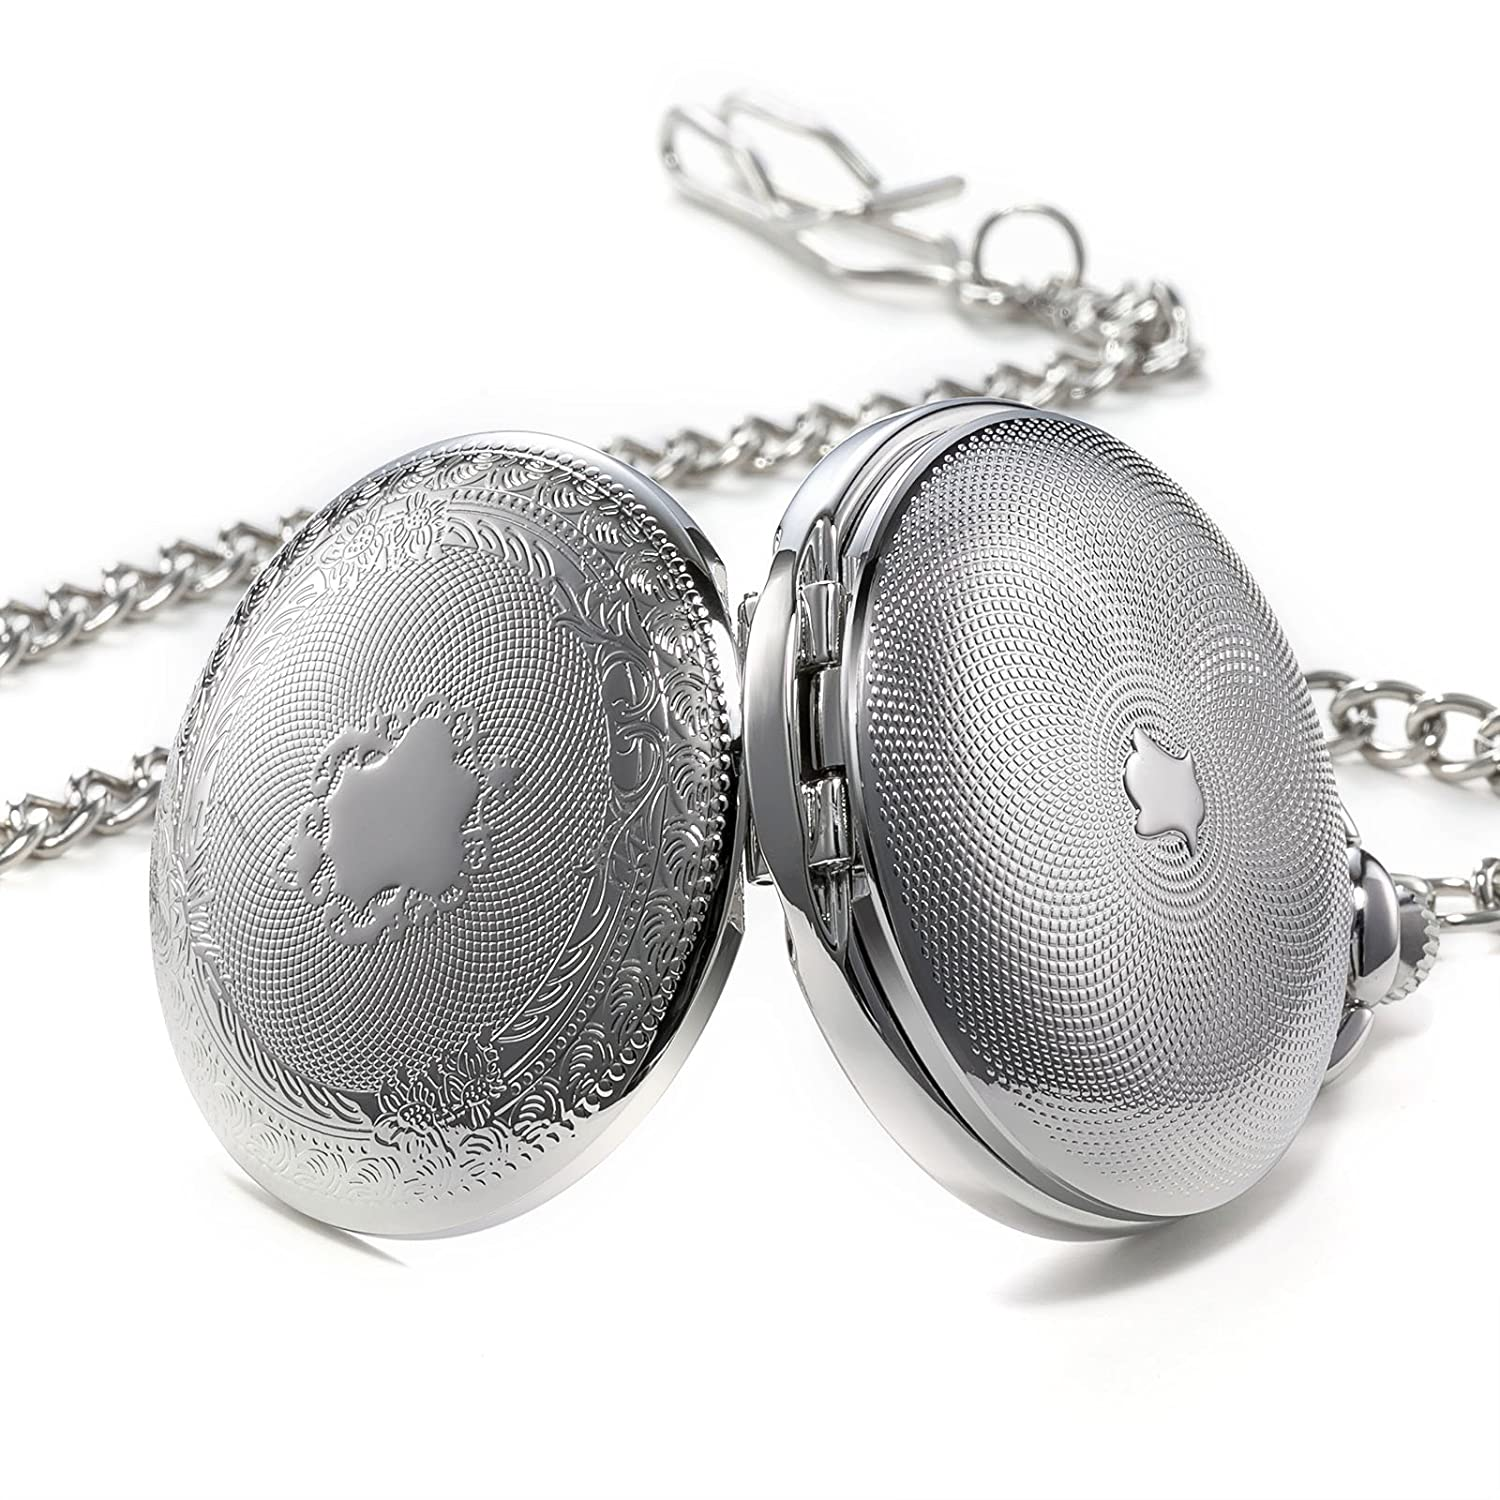 Amazon.com: TREEWETO Double Open Skeleton Pocket Watch Mechanical Hand Wind Full Hunter Silver Fob Watch: Watches